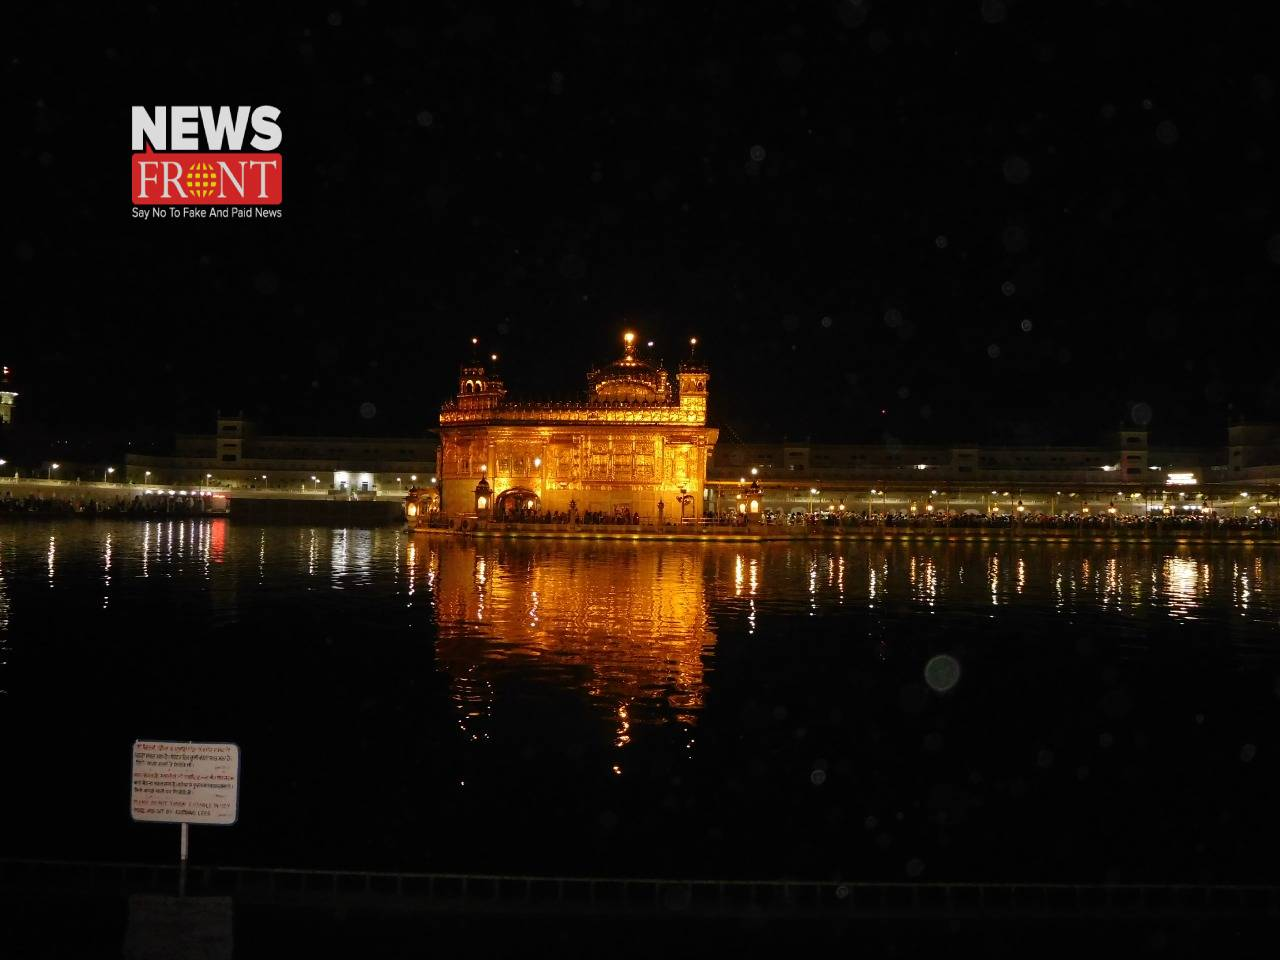 golden temple | newsfront.co